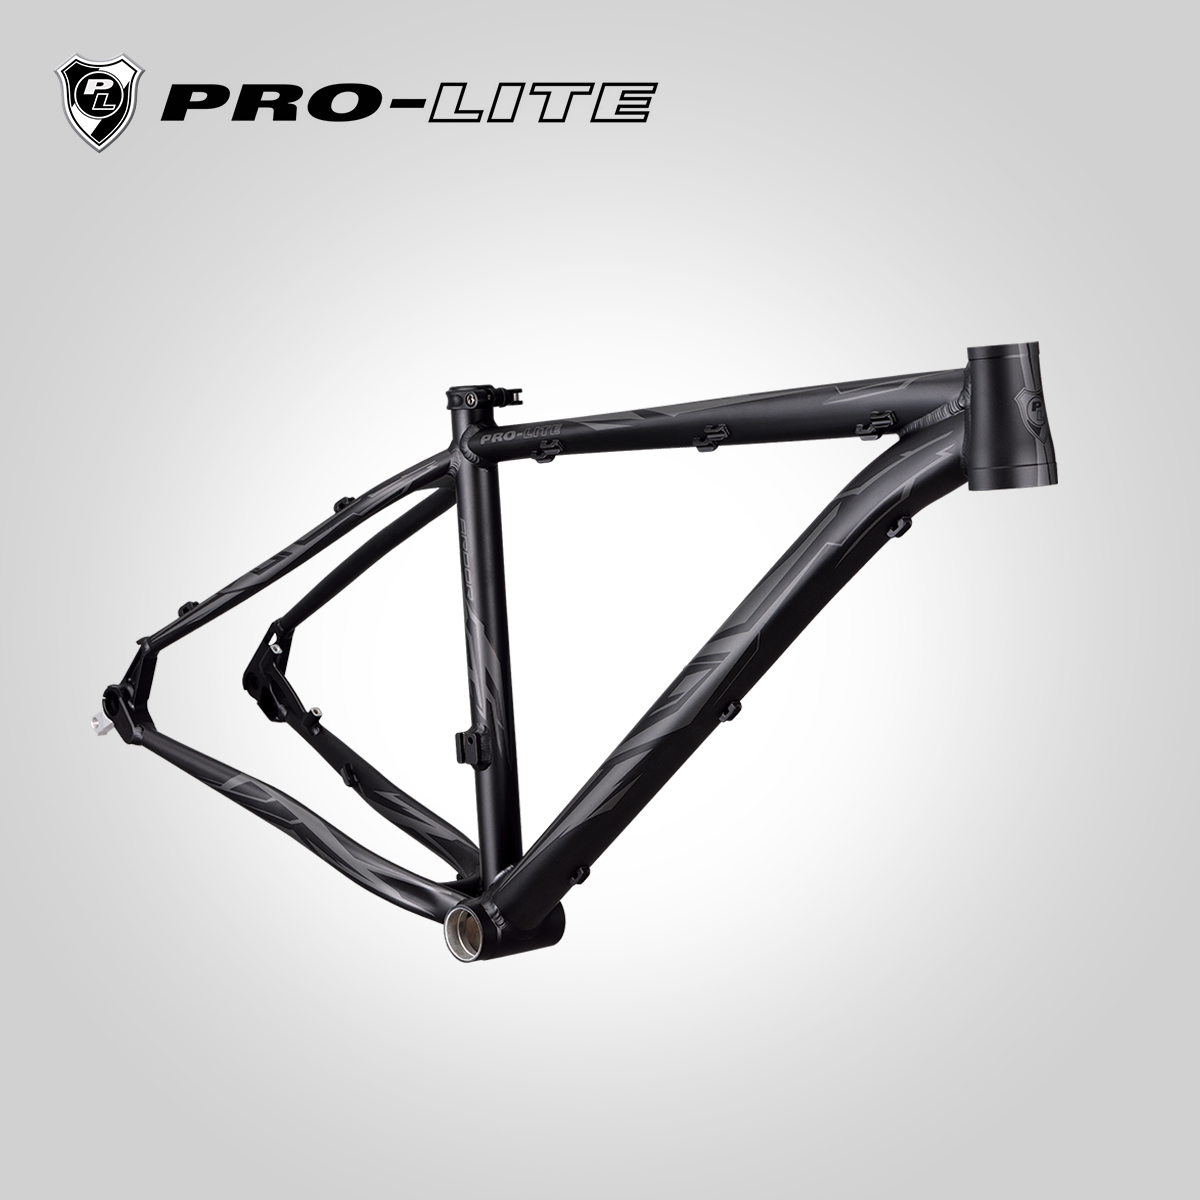 Pro-Lite Bicycle Frame Aluminum Alloy Bicycle Frame Assembly 15-inch 17-inch Mountain Bike Frame 26-inch